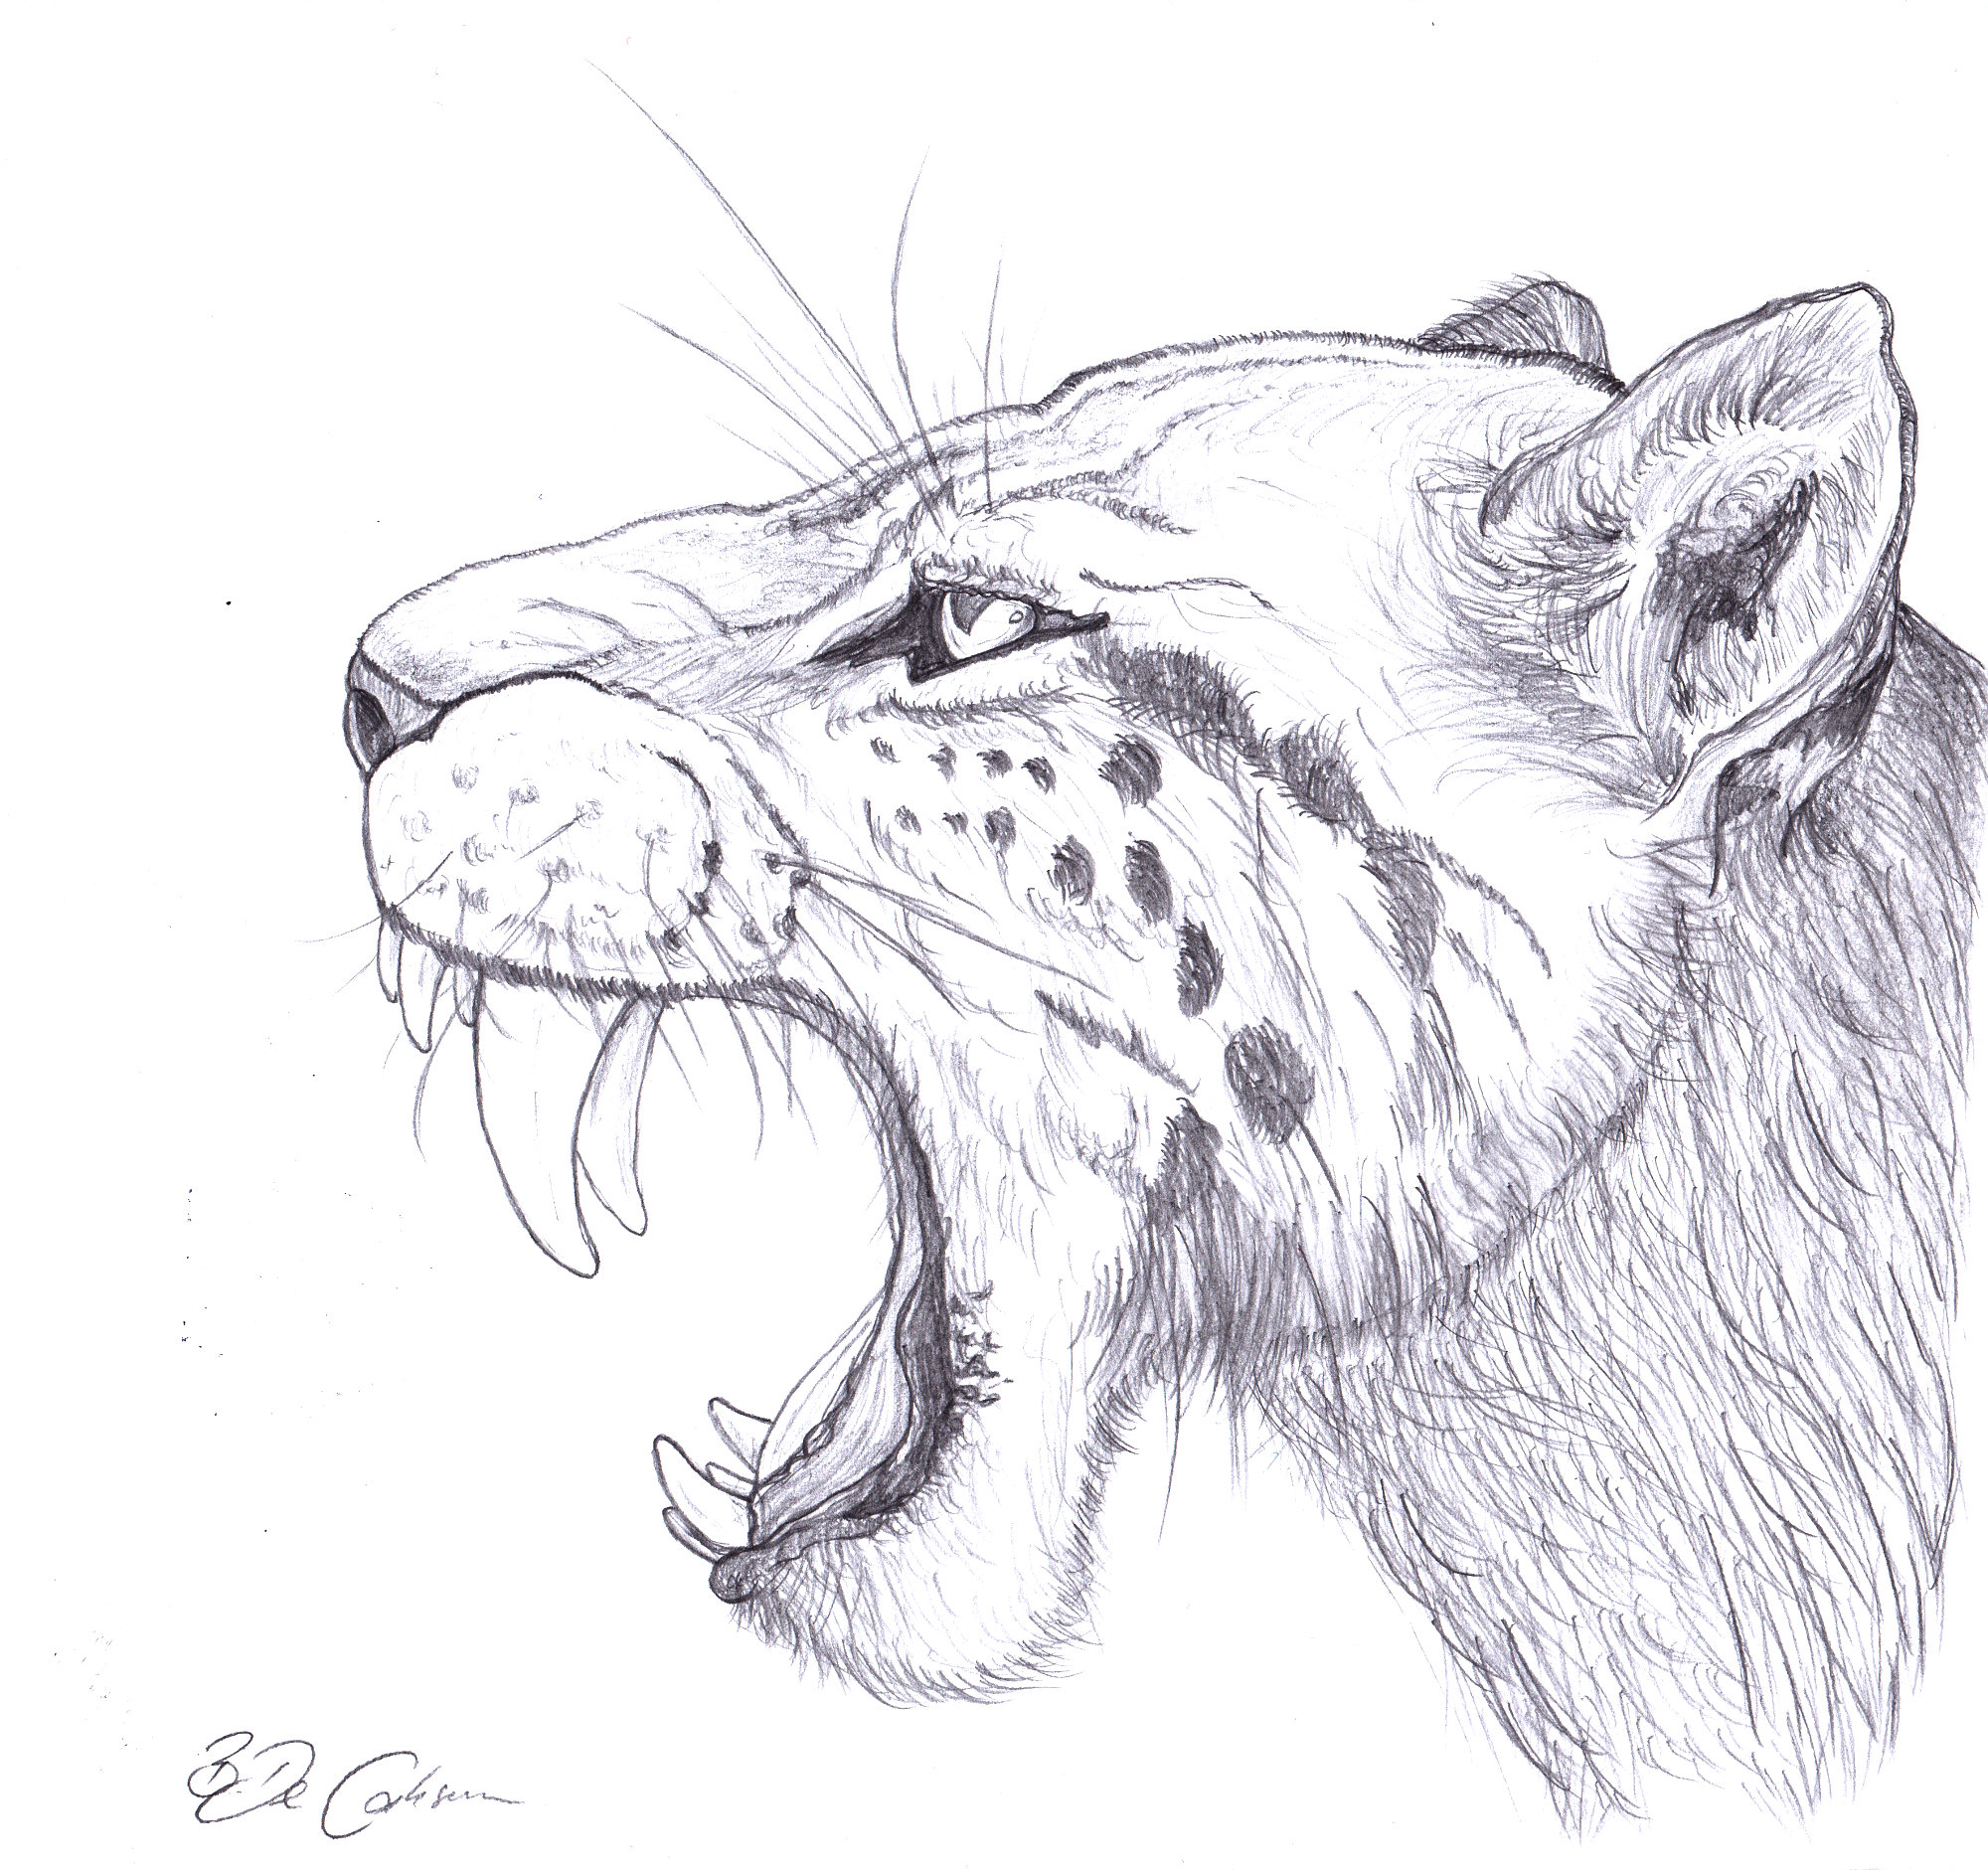 Ancient Dna Offers New View On Saber Toothed Cats Past